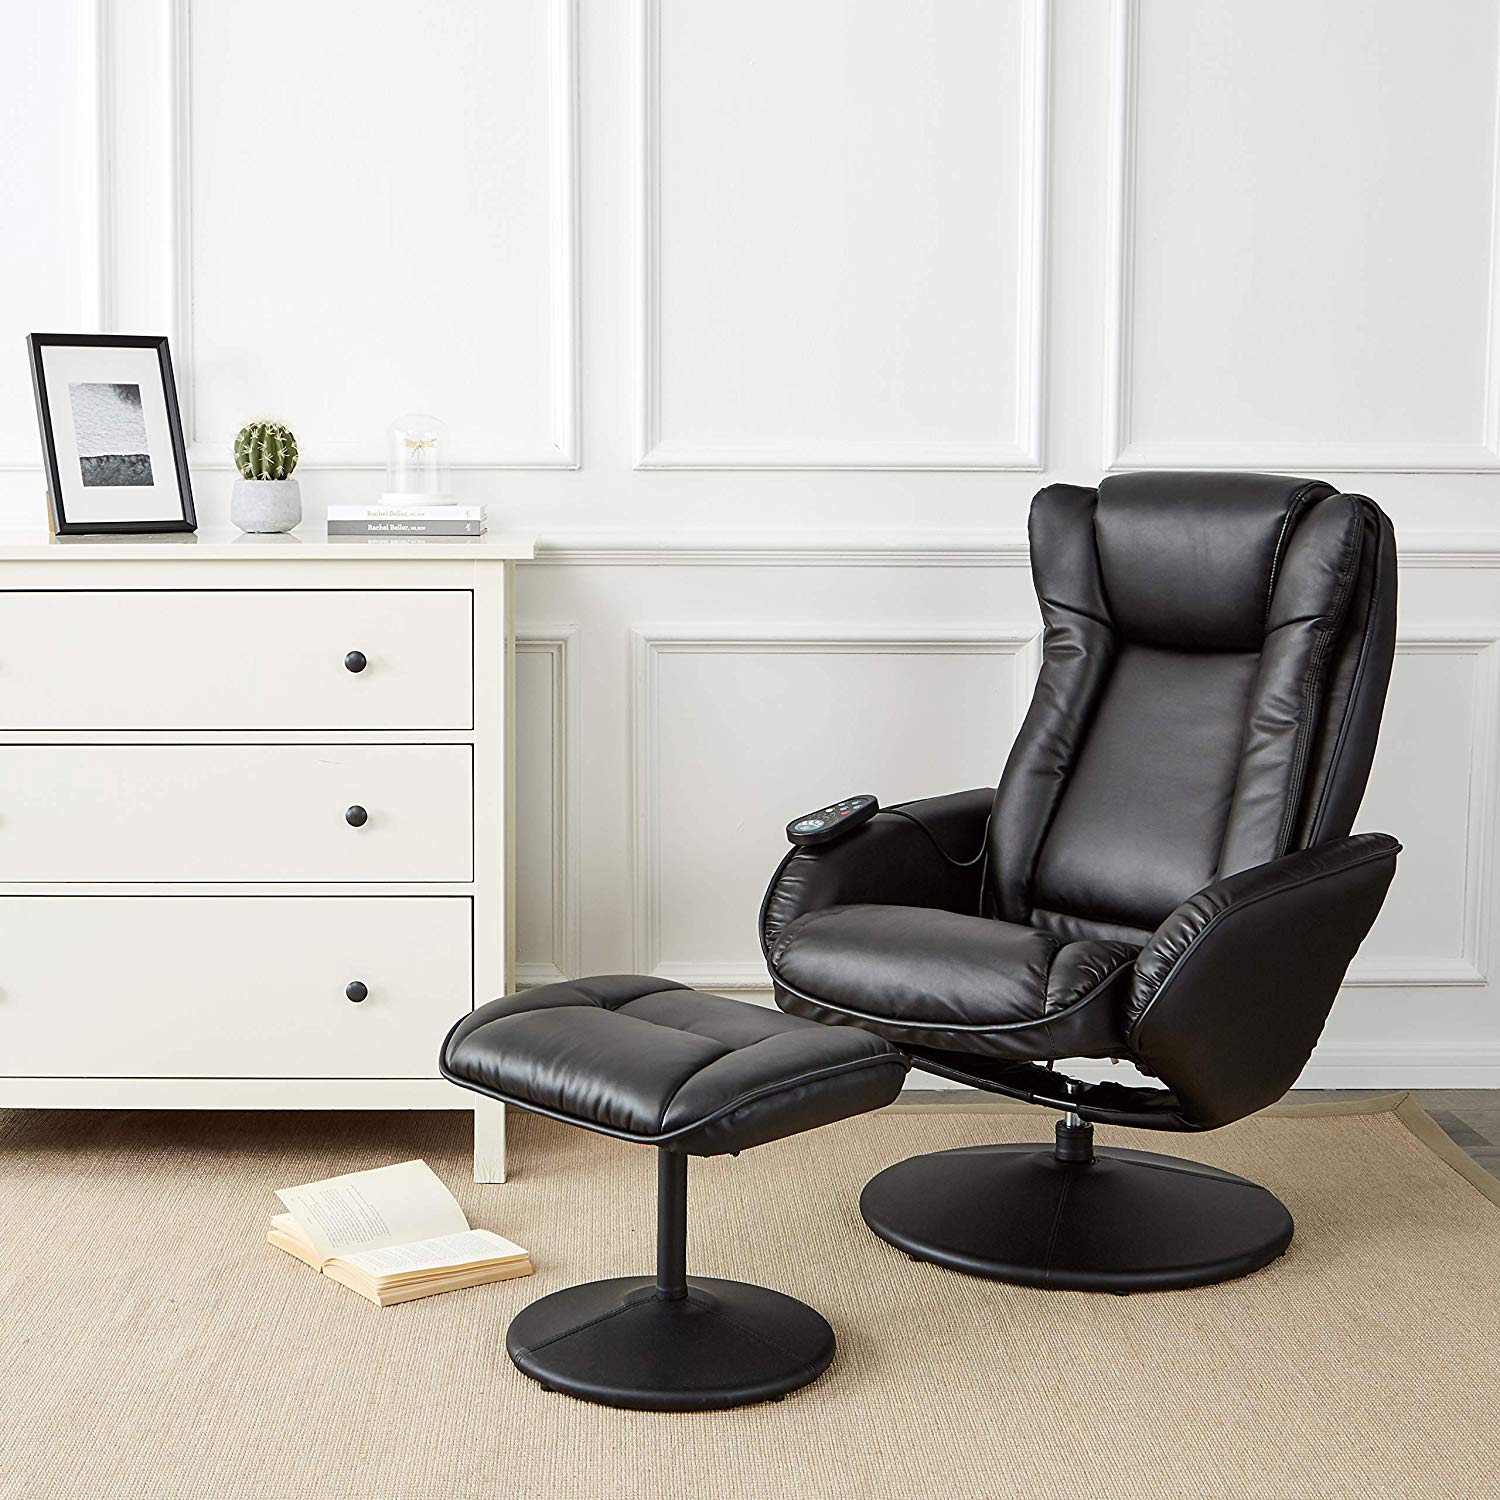 Massaging Leather Recliner Massage Chair features